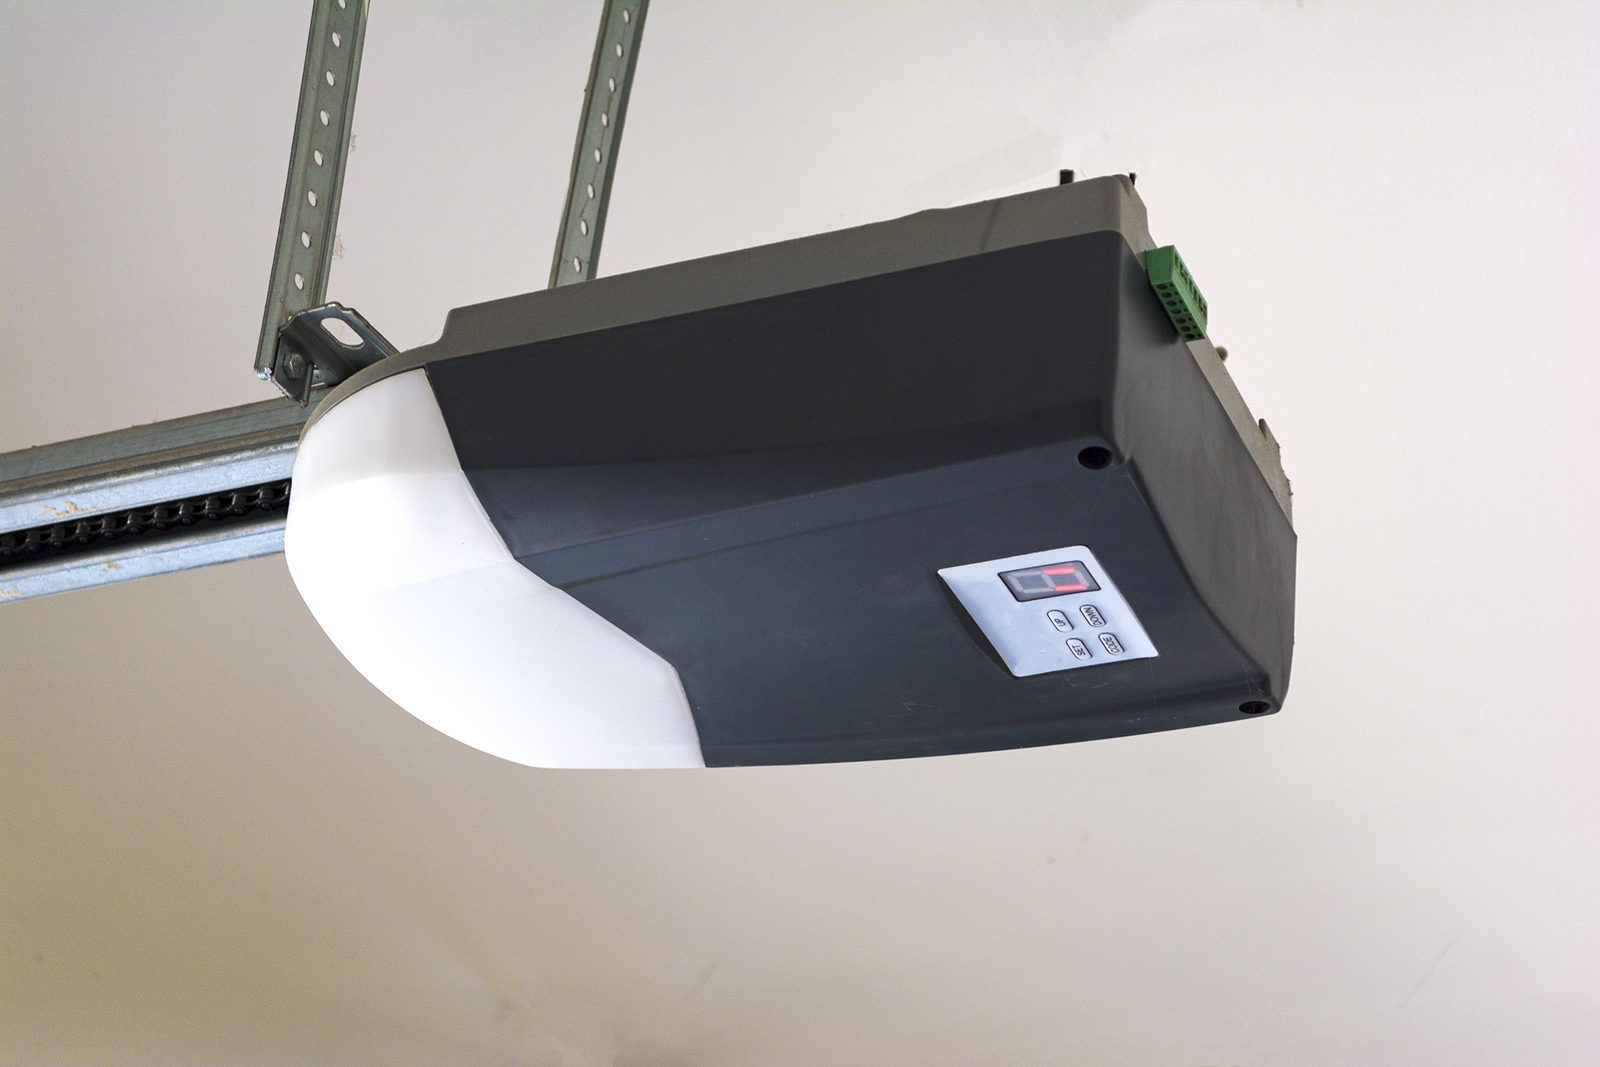 Close-Up-Of-An-Automatic-Garage-Door-Opener-on-Ceiling